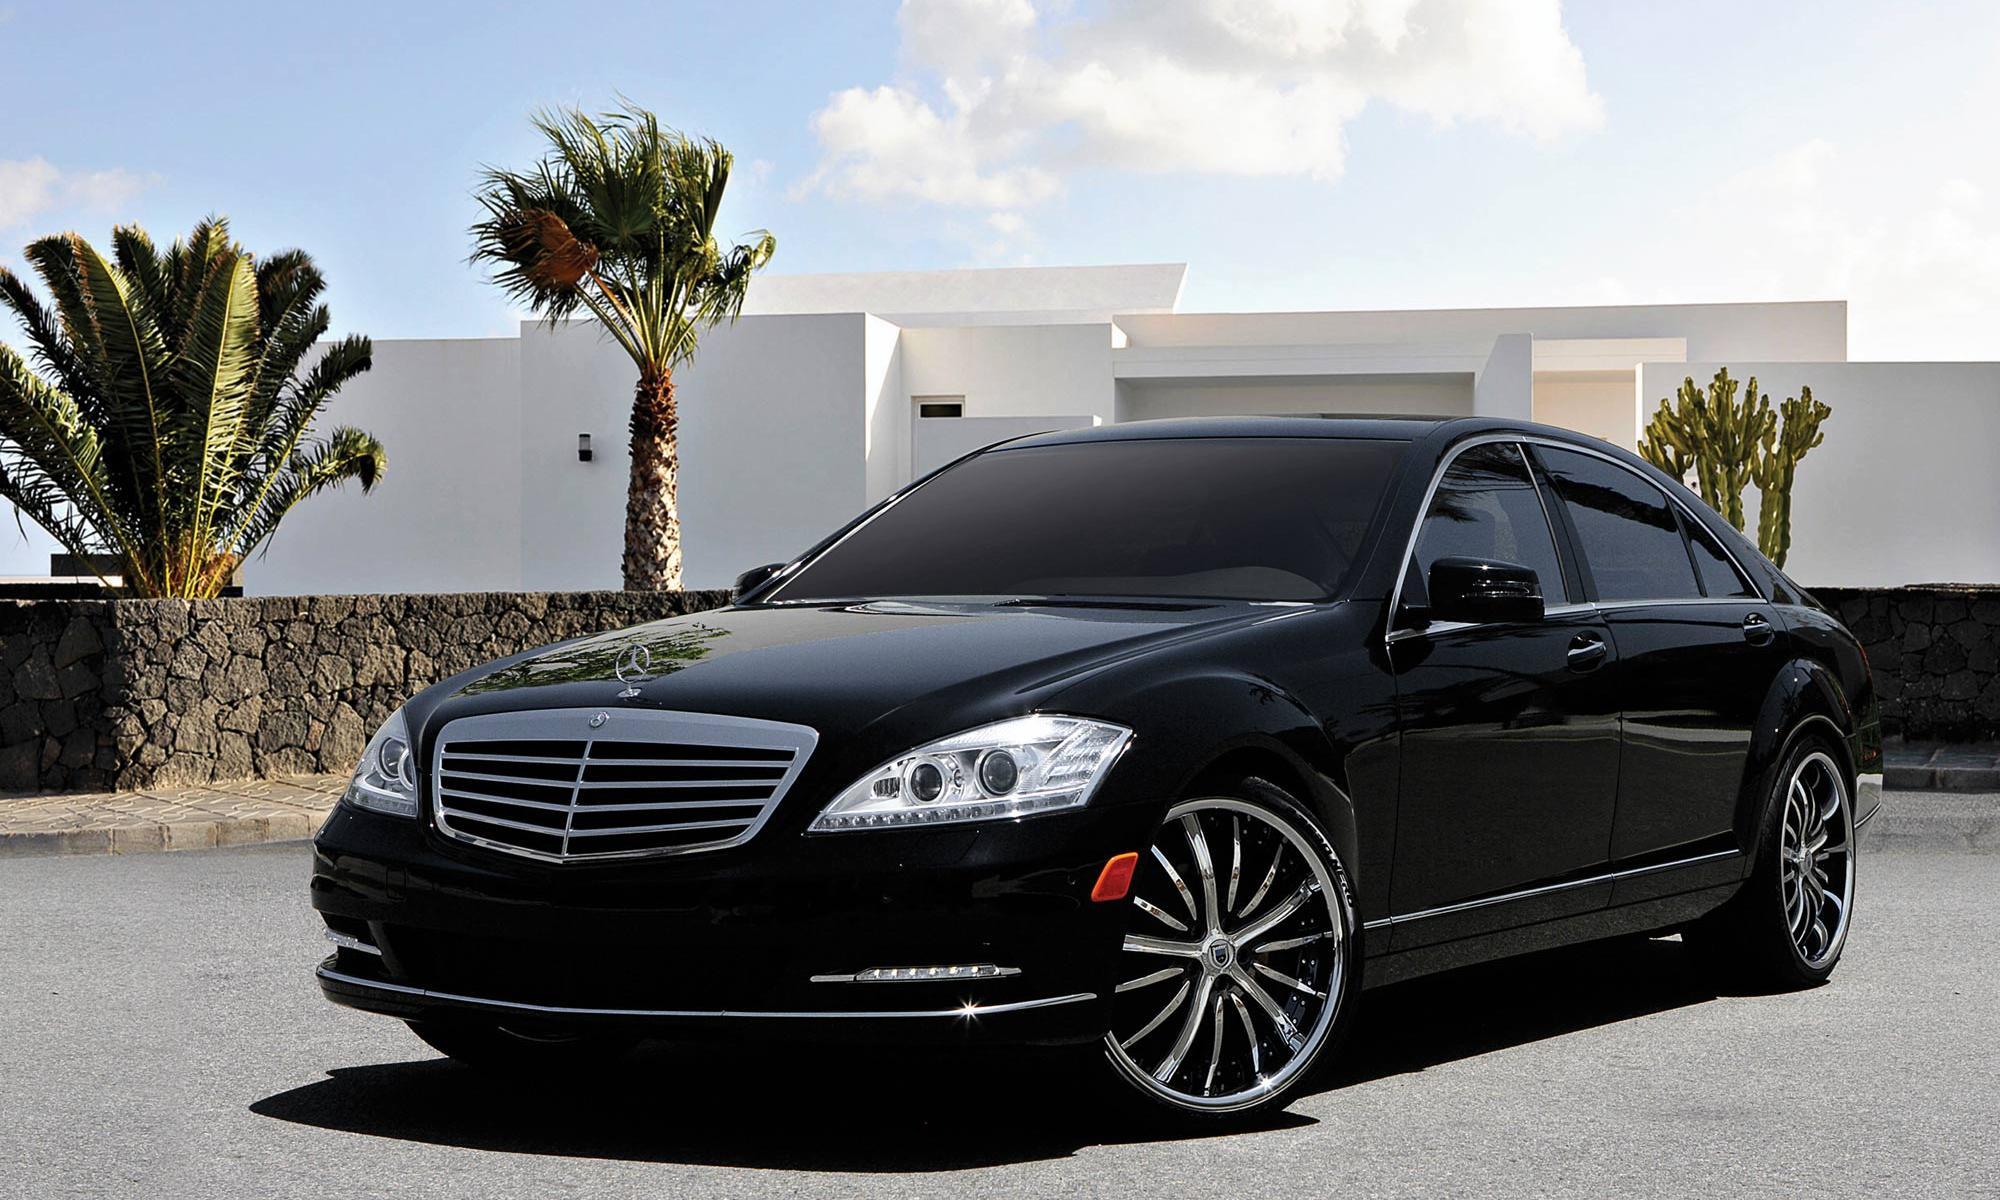 Mercedes benz s550 tollimo for Mercedes benz s550 for sale